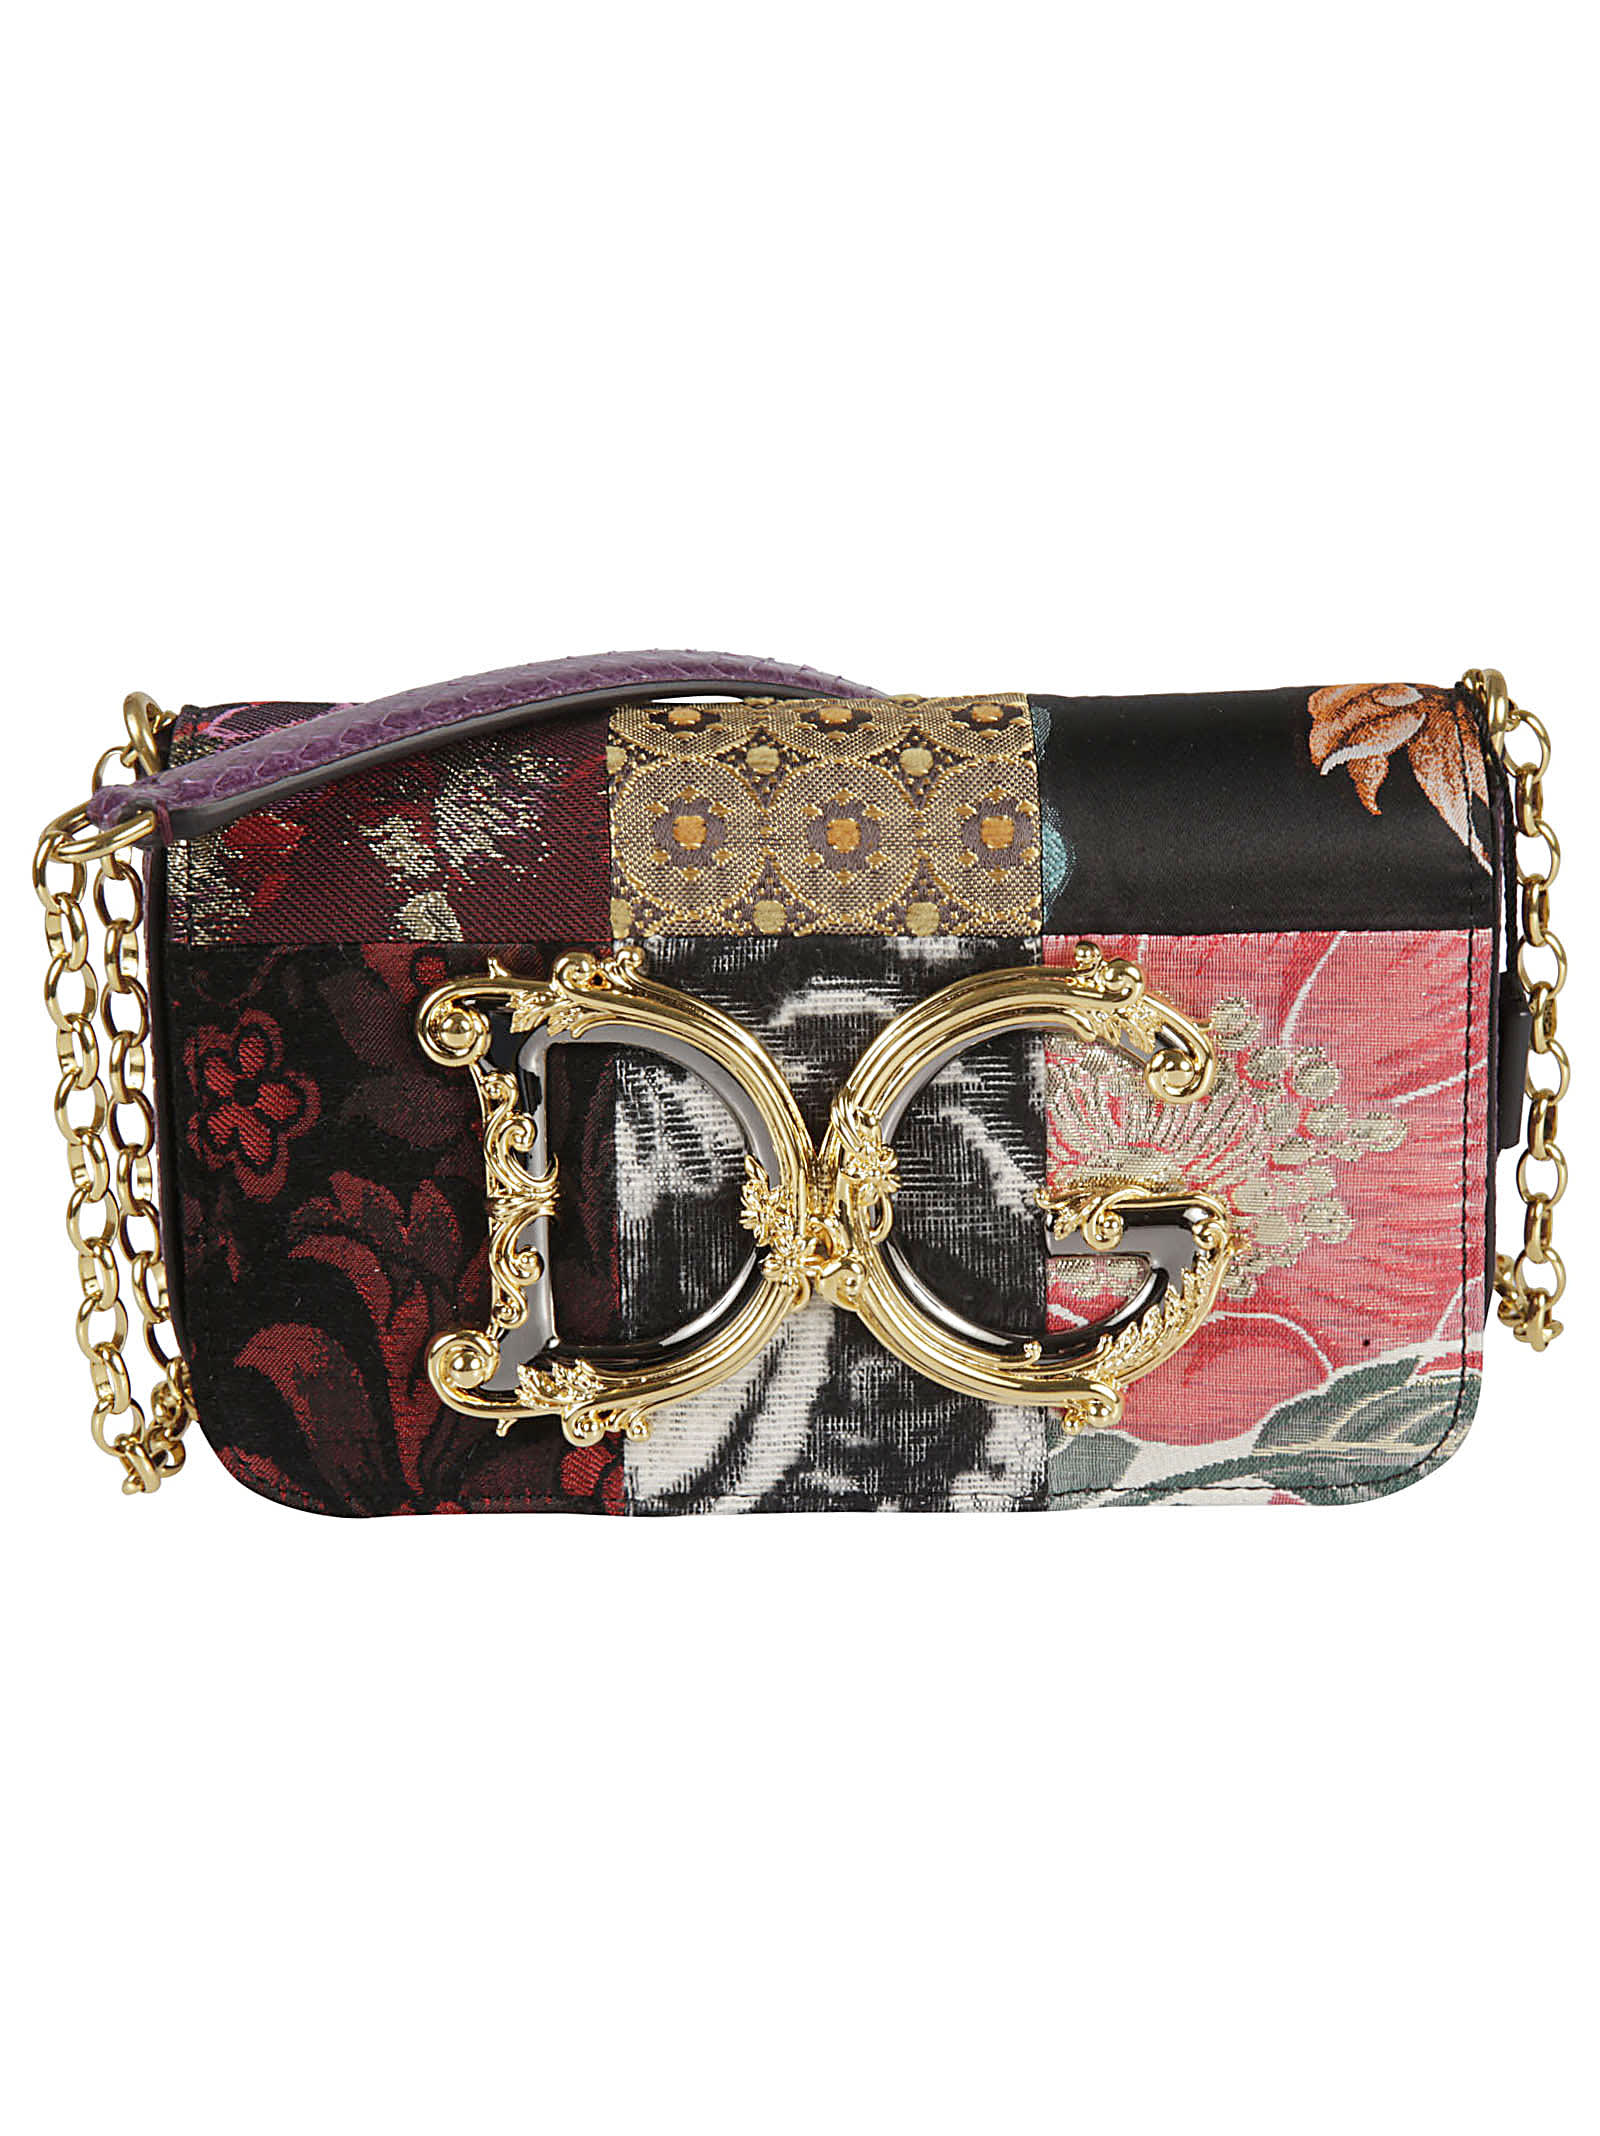 Dolce & Gabbana AYERS PATCHED MINI SHOULDER BAG